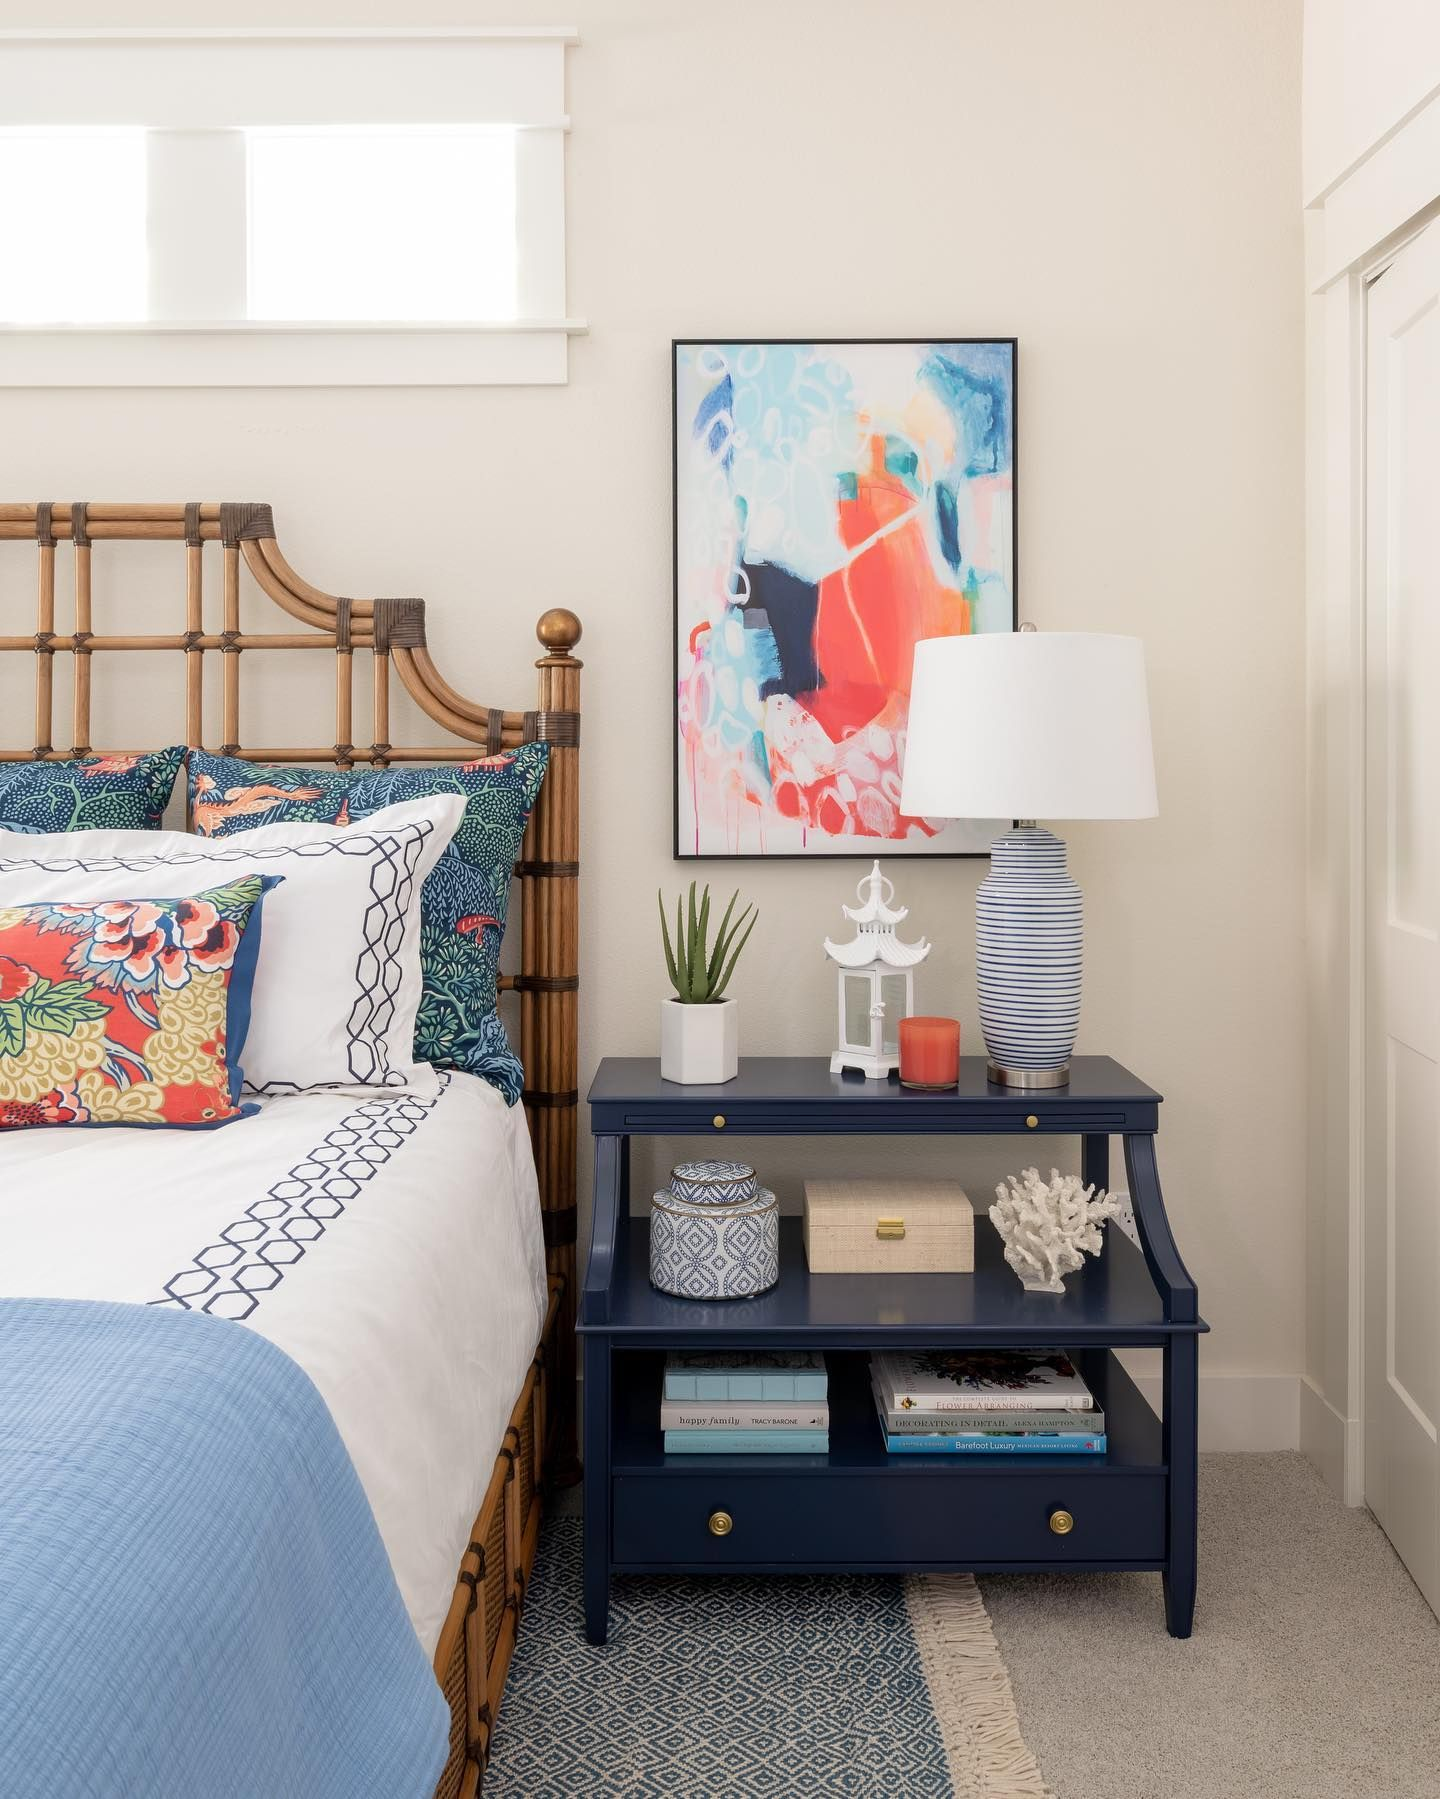 Sometimes all it takes to make a bedroom stand out is